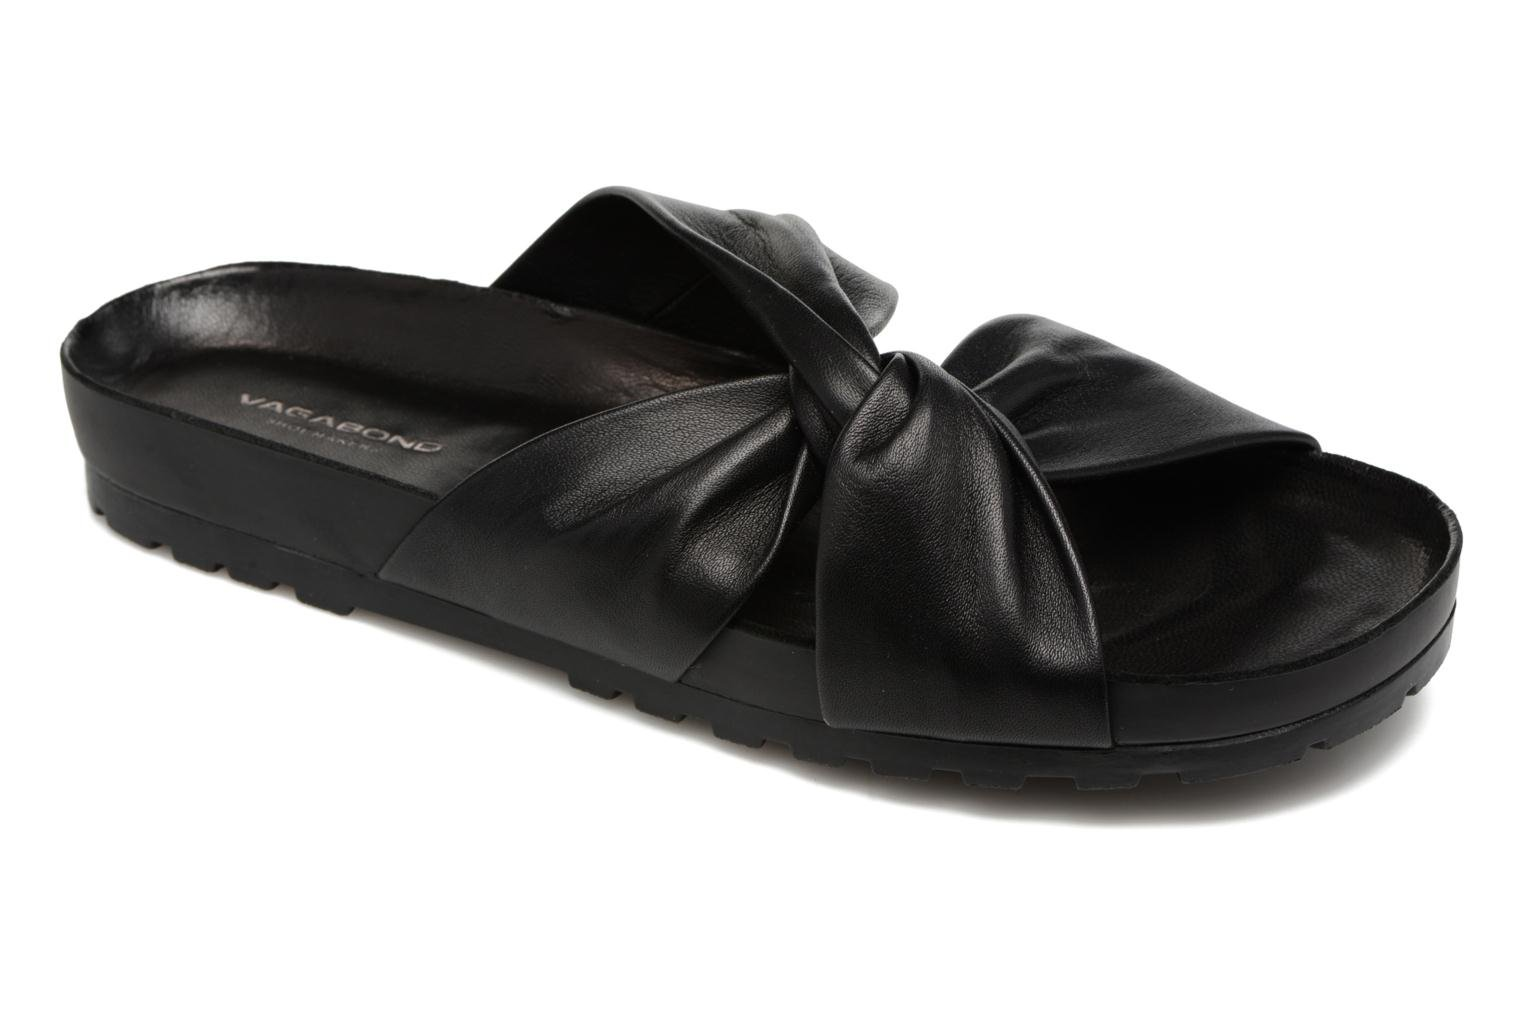 Erie 4332-101 Leather Black